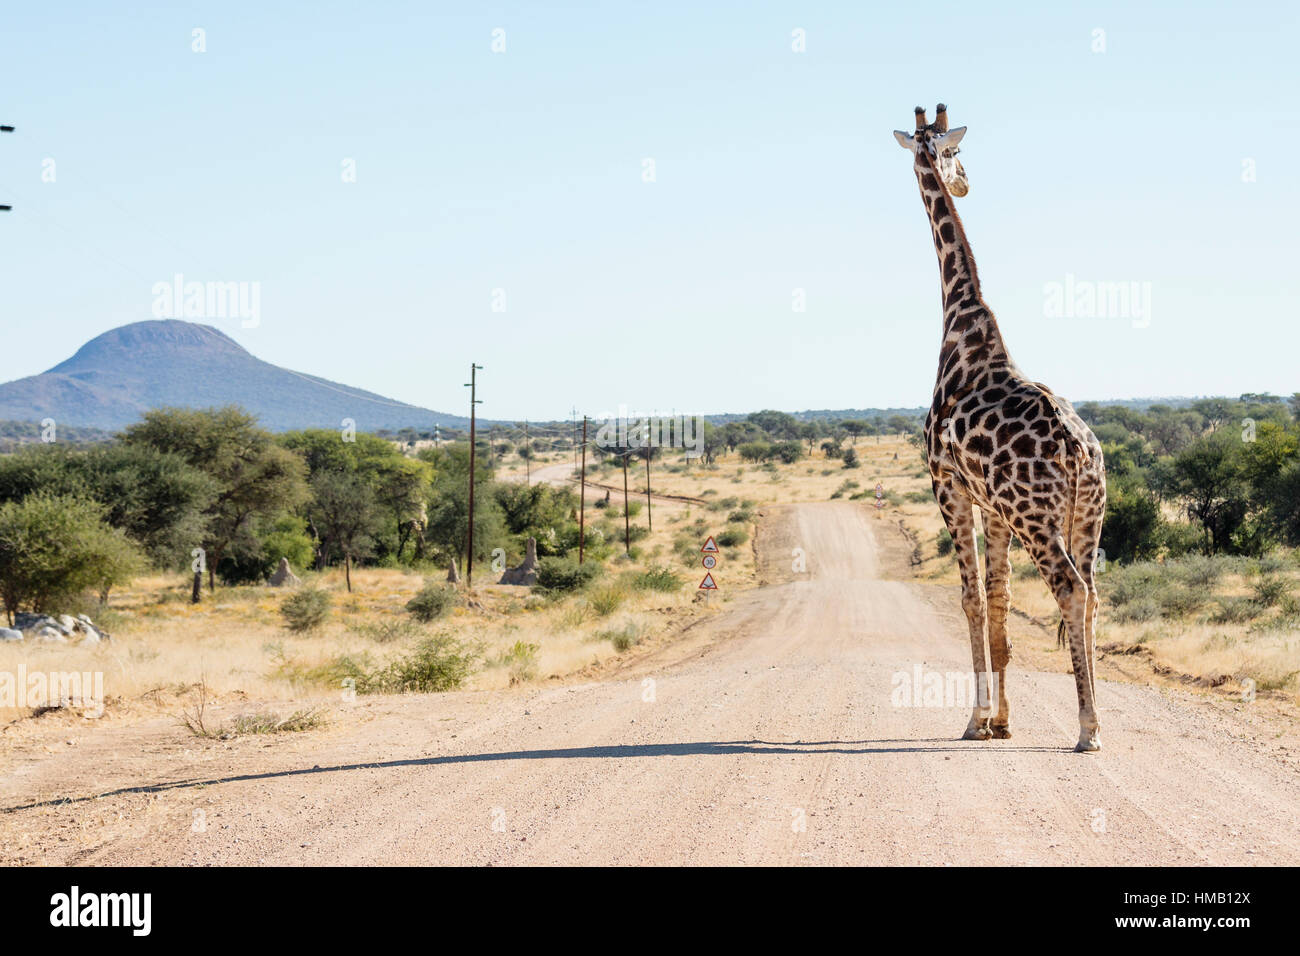 Northern giraffe (Giraffa camelopardalis) on a gravel road, Otjiwarongo, Namibia Stock Photo